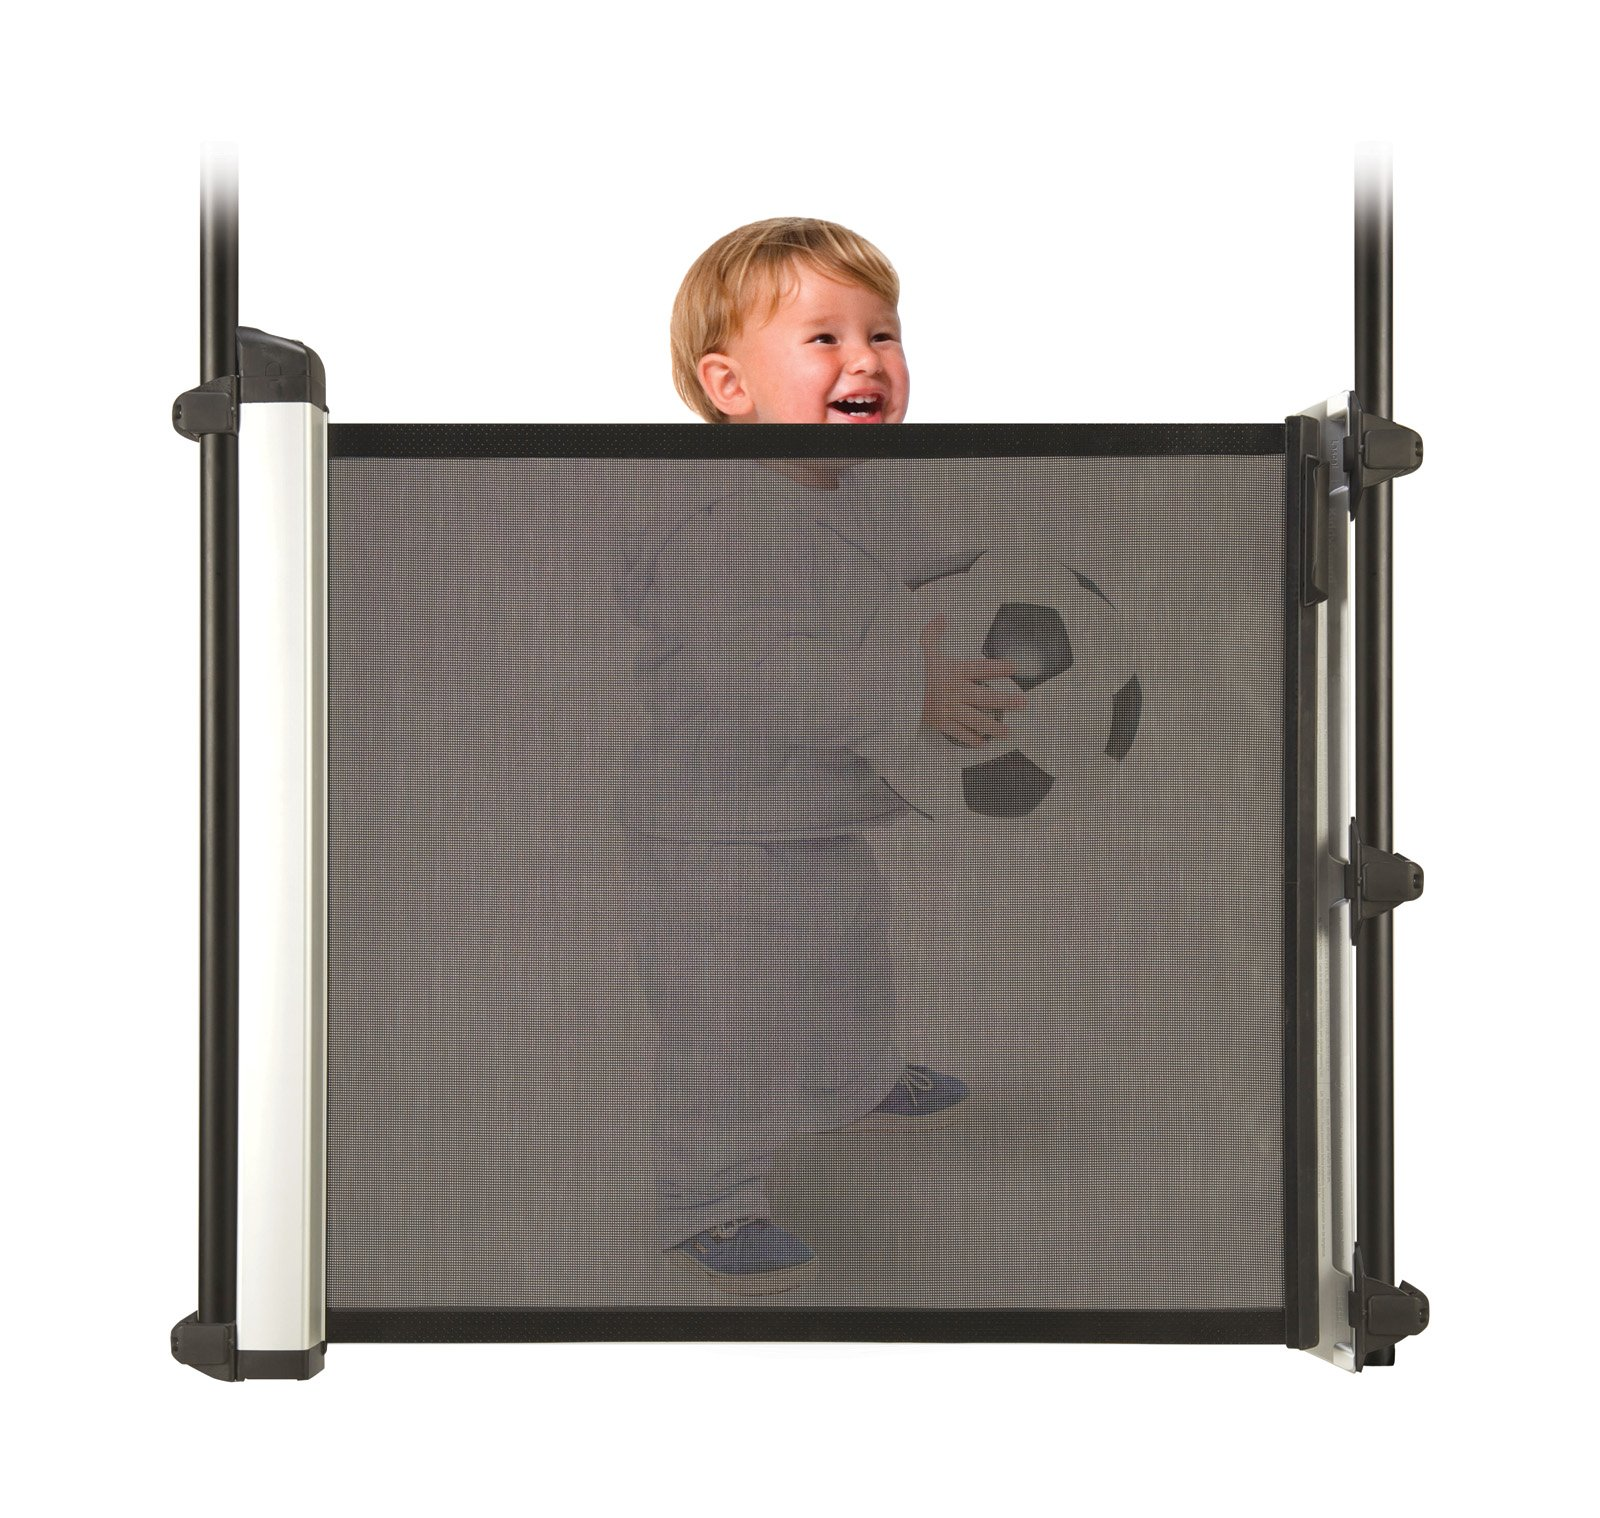 Lascal Kiddyguard Avant - Black KiddyGuard Super size extra wide retractable baby gate for spaces up to 120cm. Can easily be operated with one hand Simple and easy to install 19